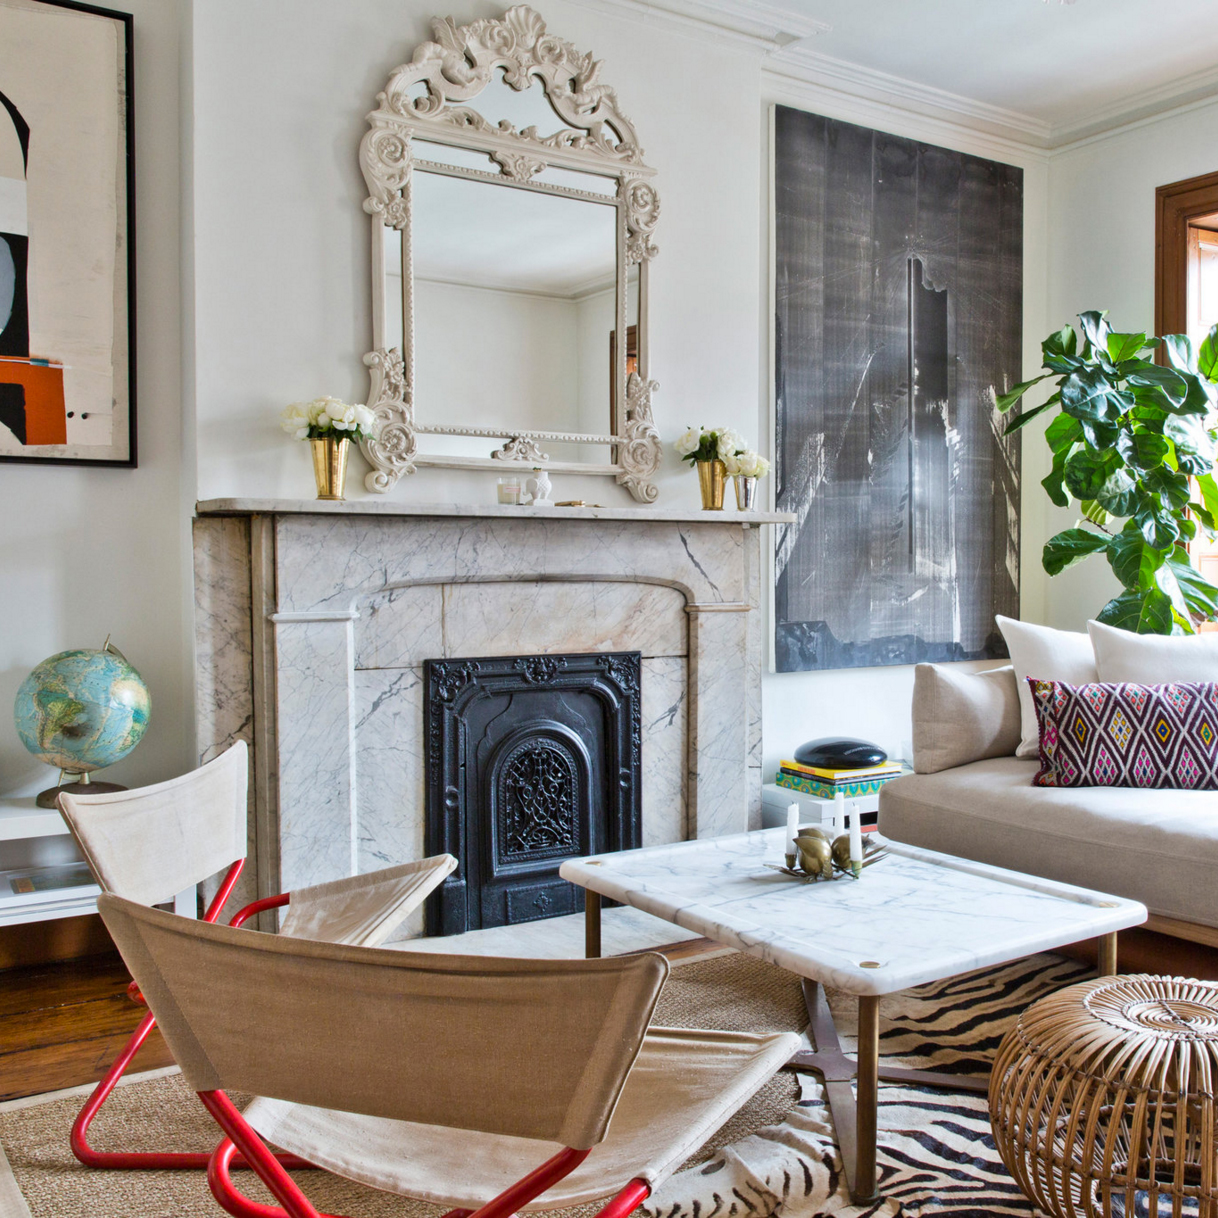 Essentials For A WellDesigned Room Camille Styles - Living room essentials